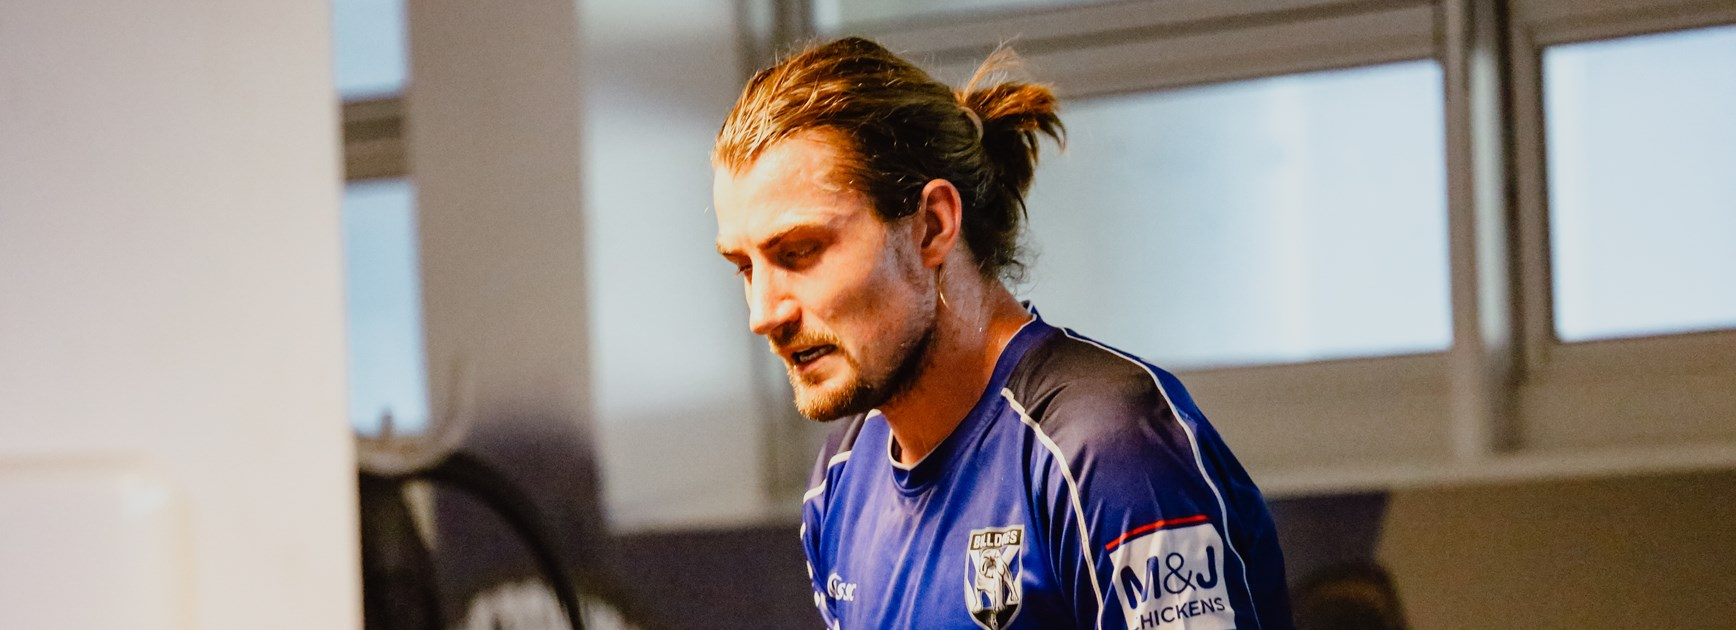 Bulldogs call for review of rules after Foran salary cap appeal rejected